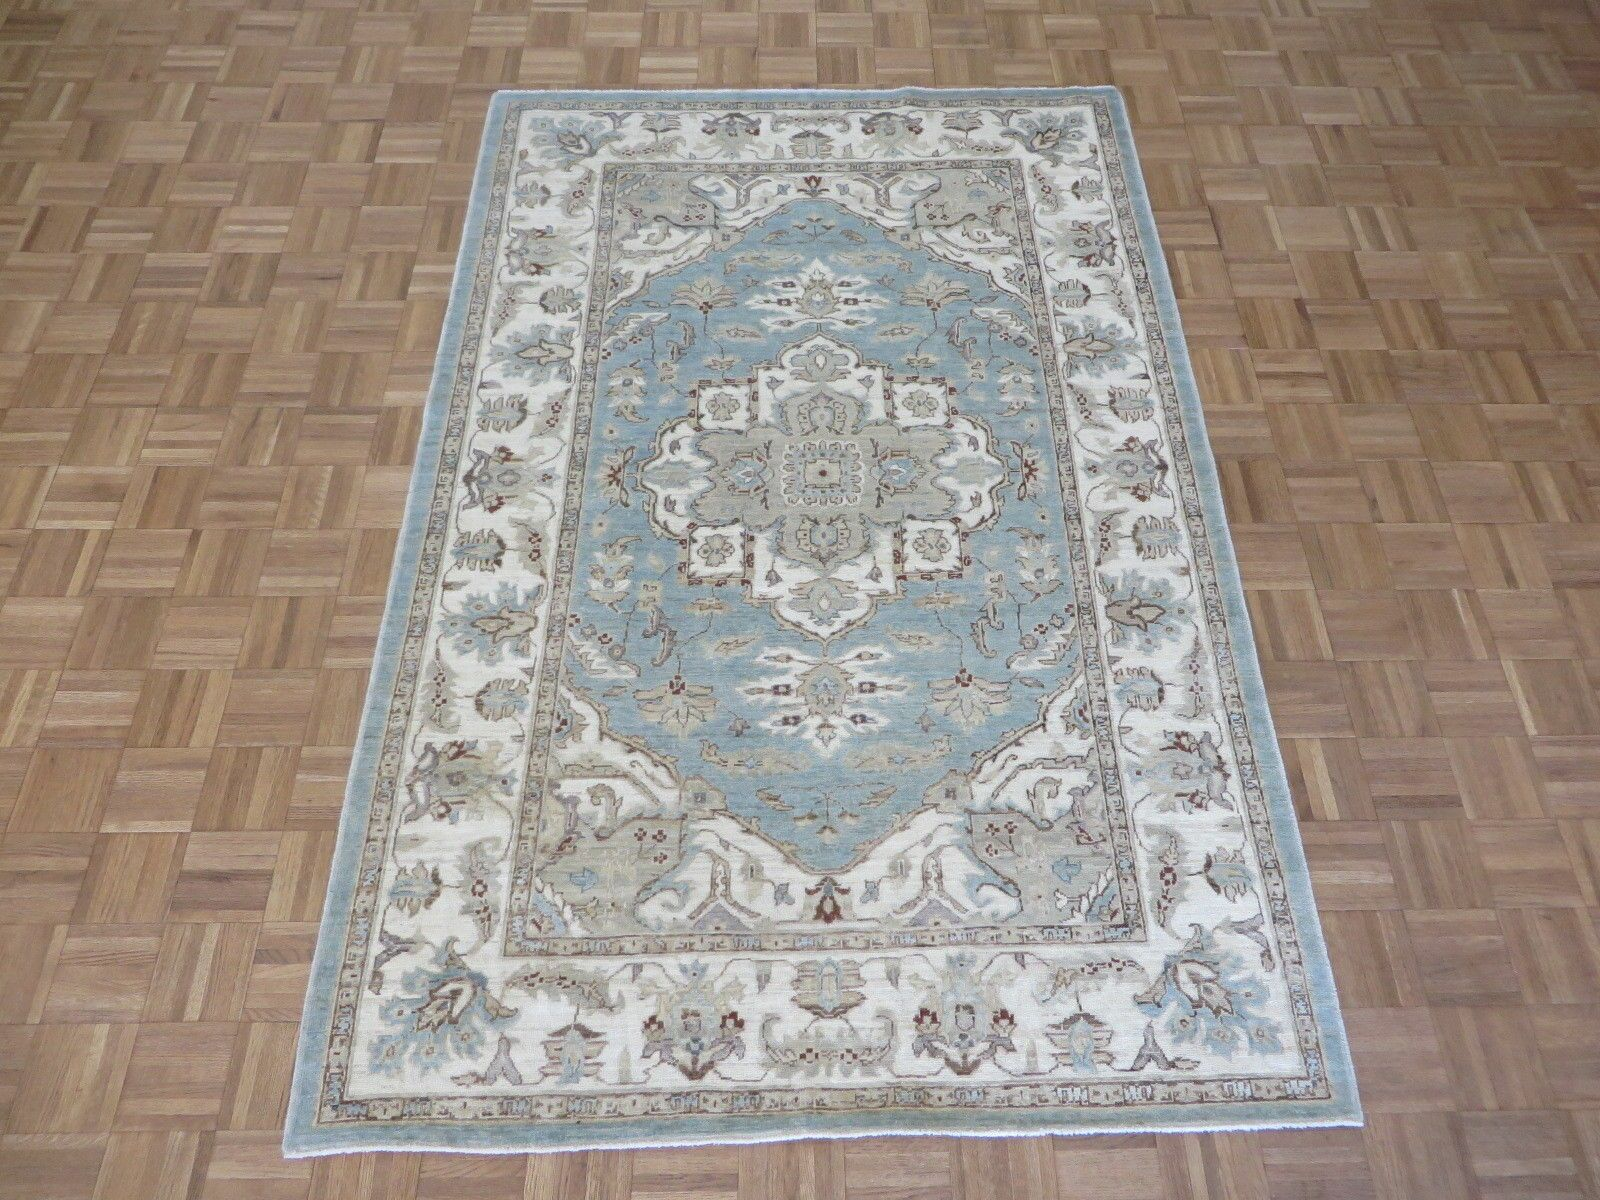 One-of-a-Kind Railsback Serapi Heriz Hand-Knotted Wool Blue Area Rug